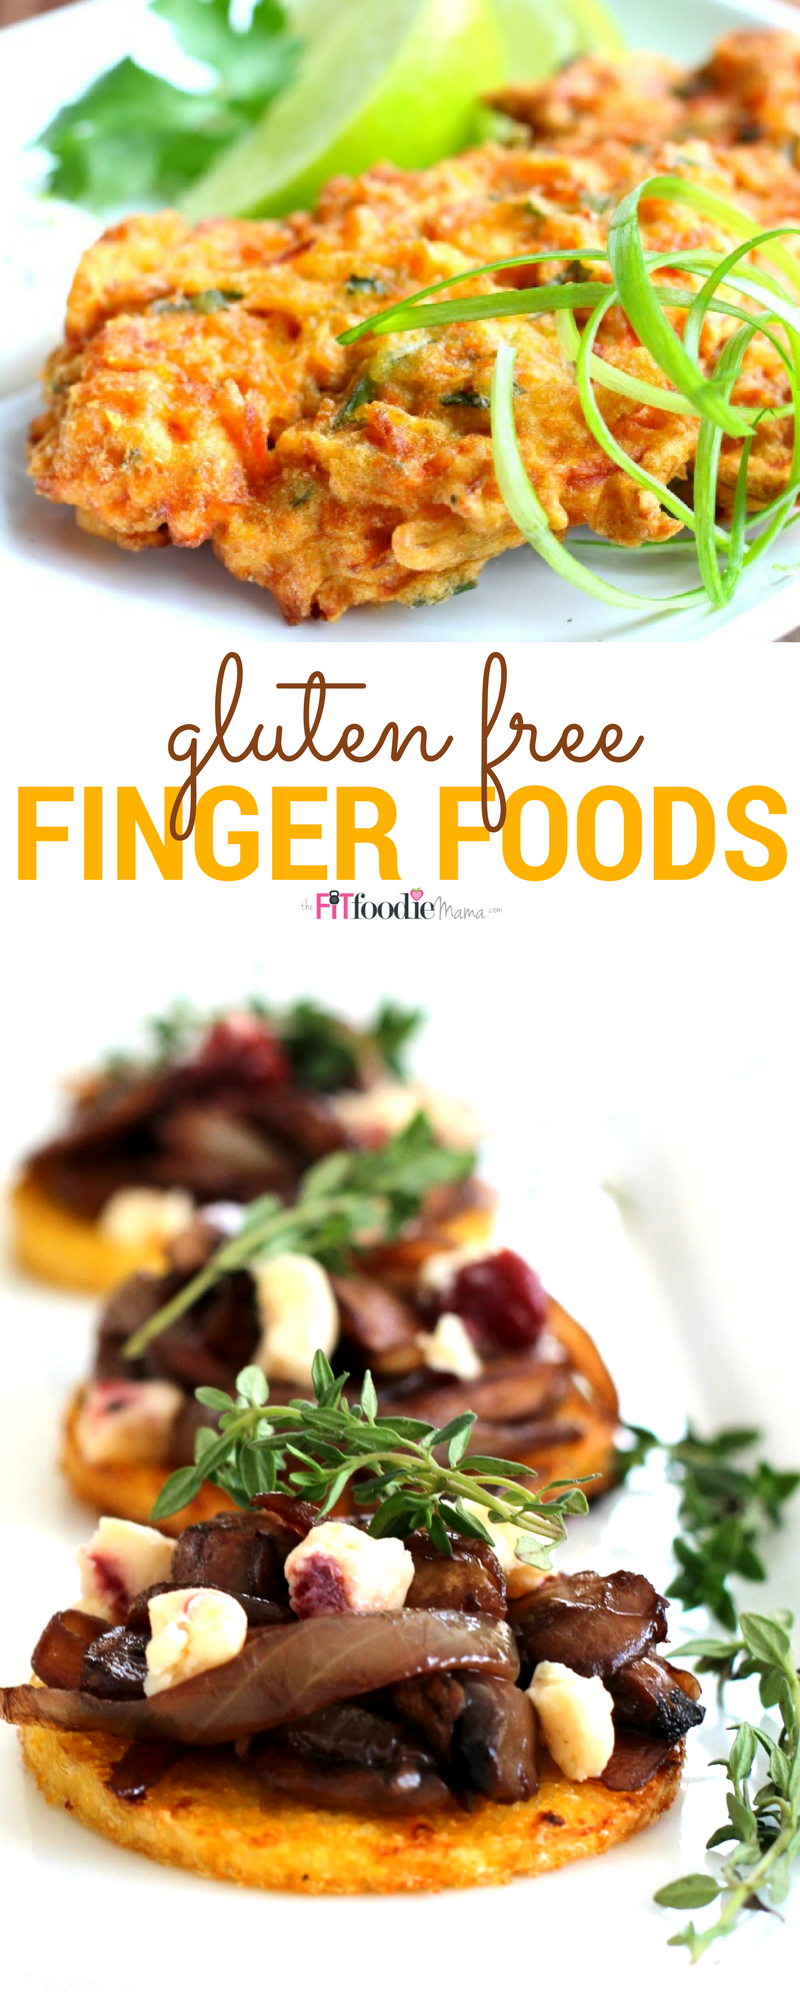 Gluten Free and Delicious Finger Food and Party Appetizer Recipes for the Holidays